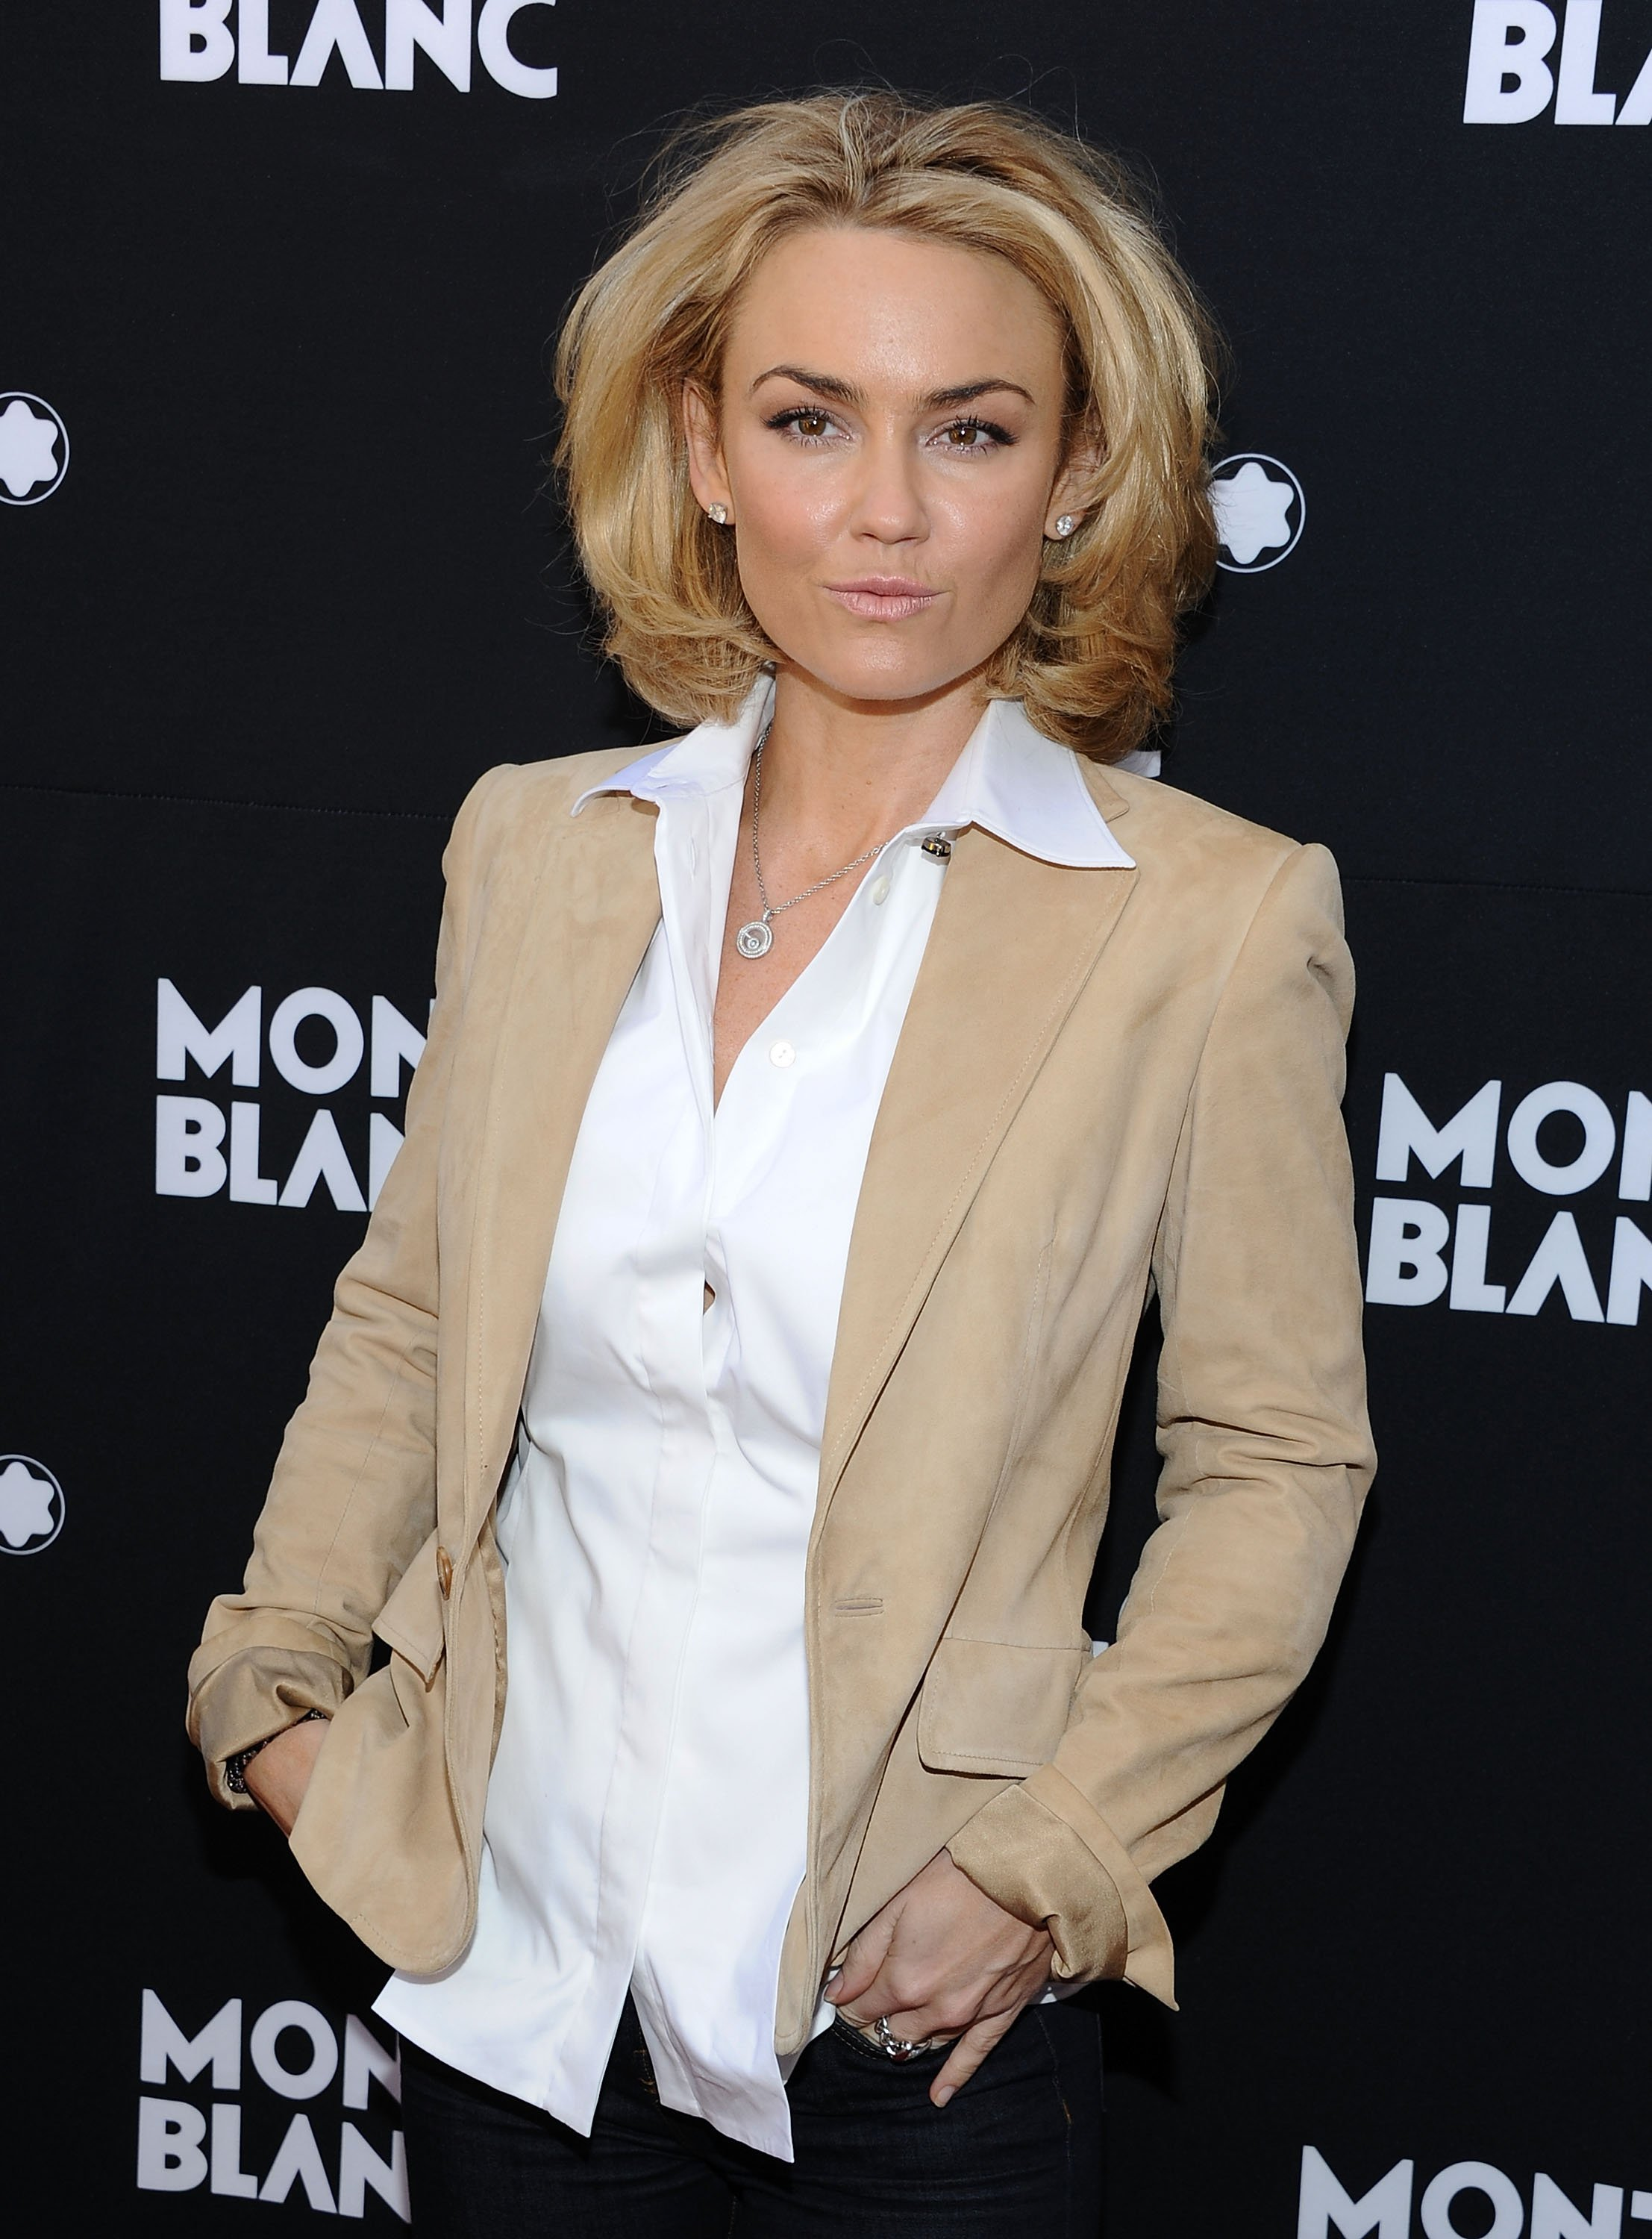 Kelly Carlson arrives at the Montblanc Pre-Oscar brunch celebrating Princesse Grace De Monaco Collection at Bel Air Hotel on February 25, 2012, in Los Angeles, California. | Source: Getty Images.